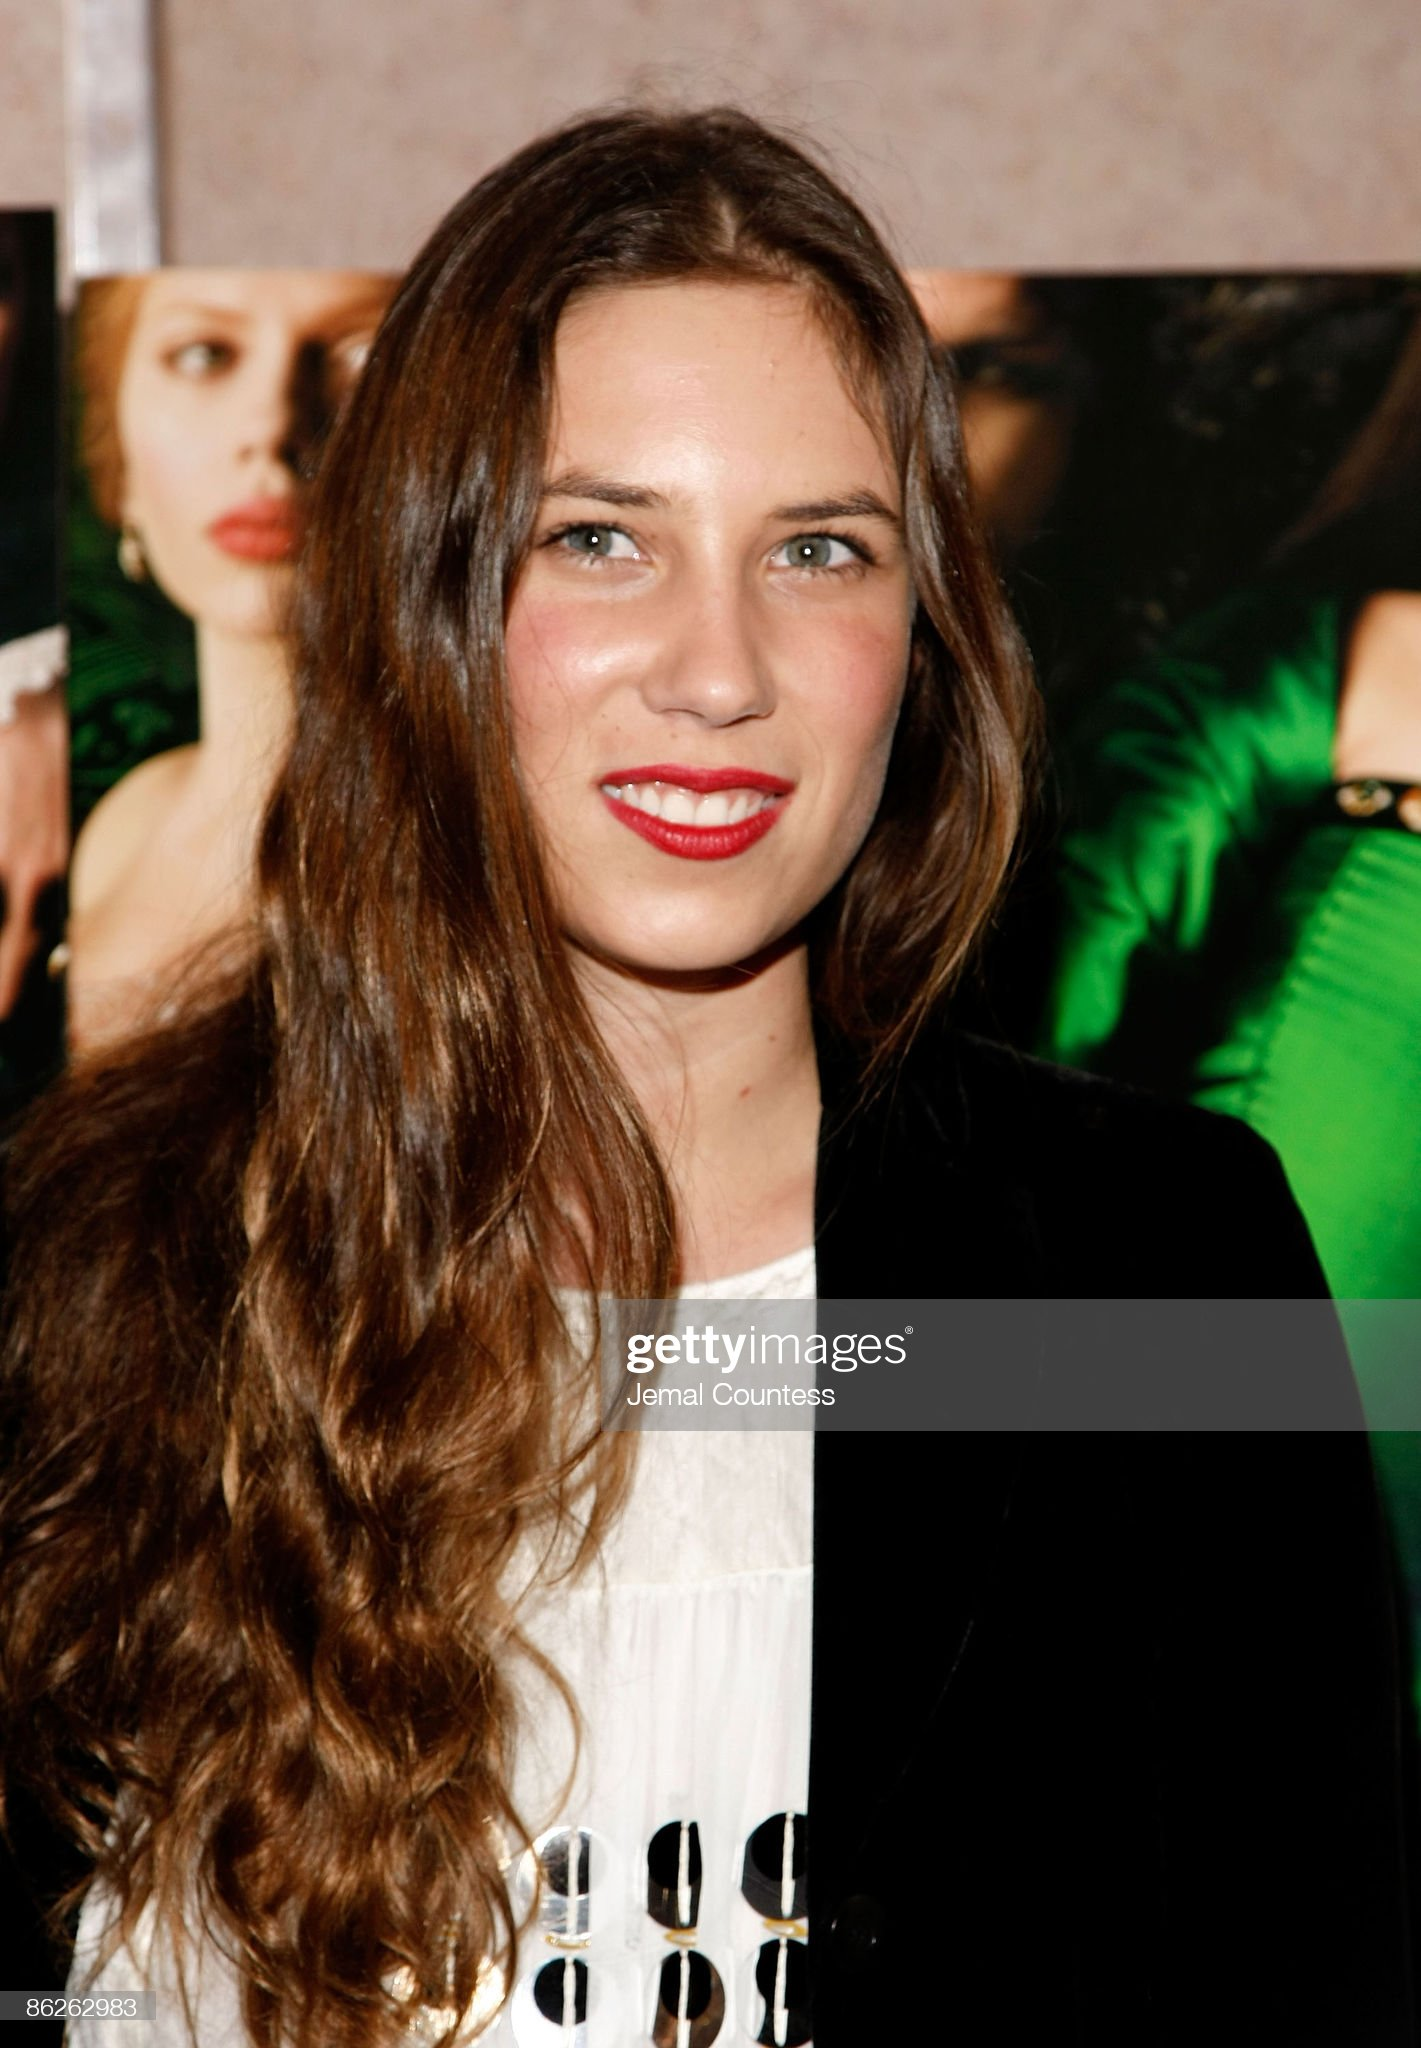 """Private Screening of """"The Other Boleyn Girl"""" - Red Carpet : News Photo"""